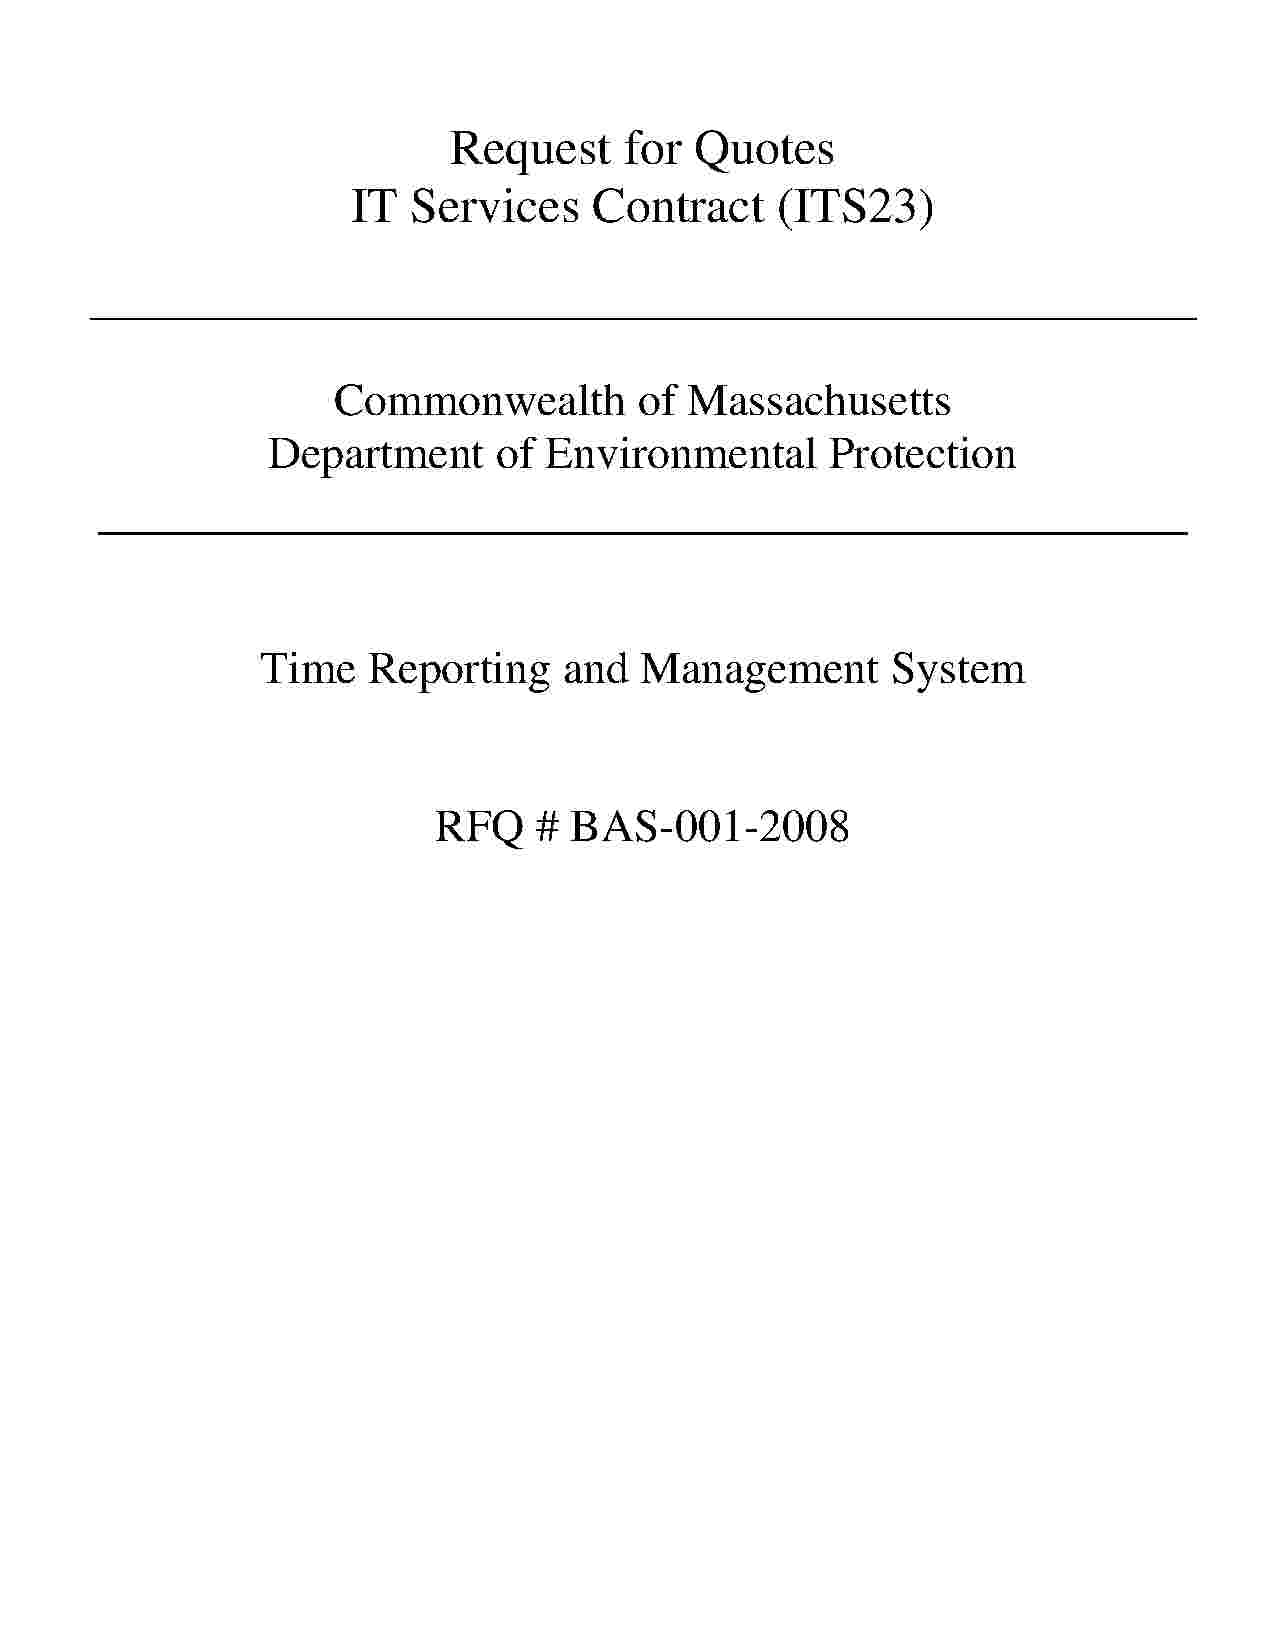 Software Agreement Contract Download Software Development Agreement Style 12 Template For Free